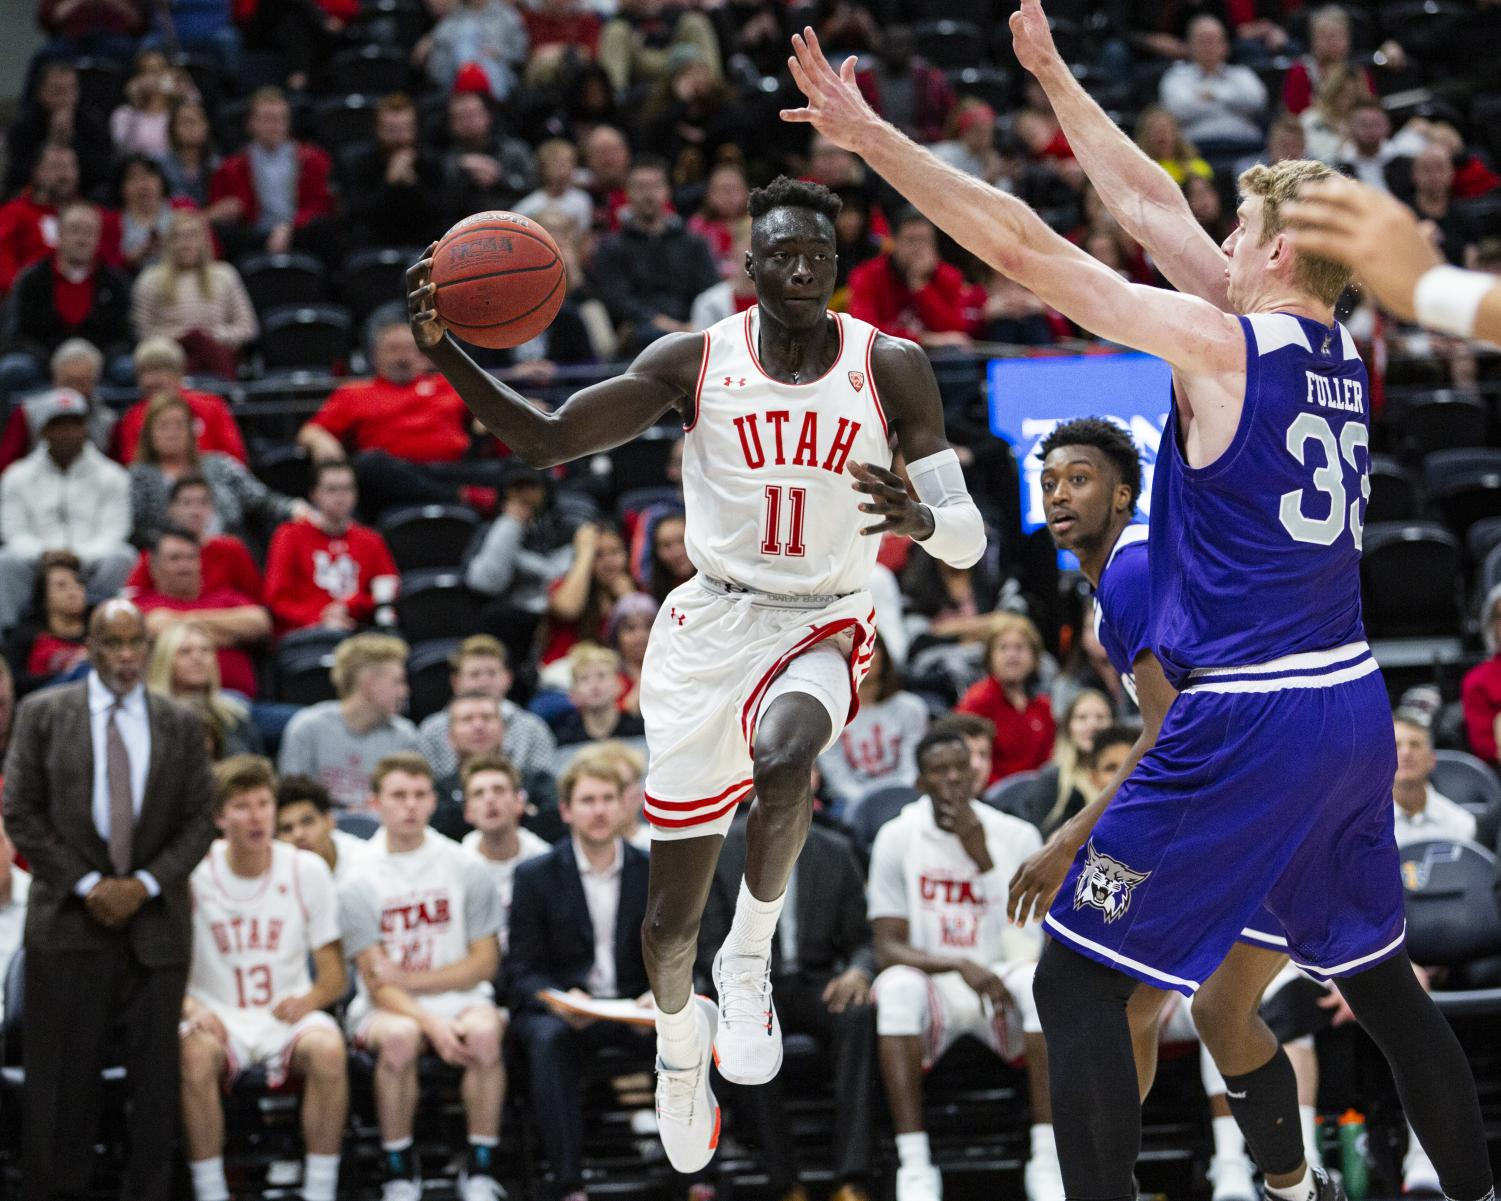 Sophomore Both Gach (11) gets a pass against Weber State University in the Beehive Classic on Dec. 14 at the Vivint Smart Home Arena. (Justin Prather | Daily Utah Chronicle)